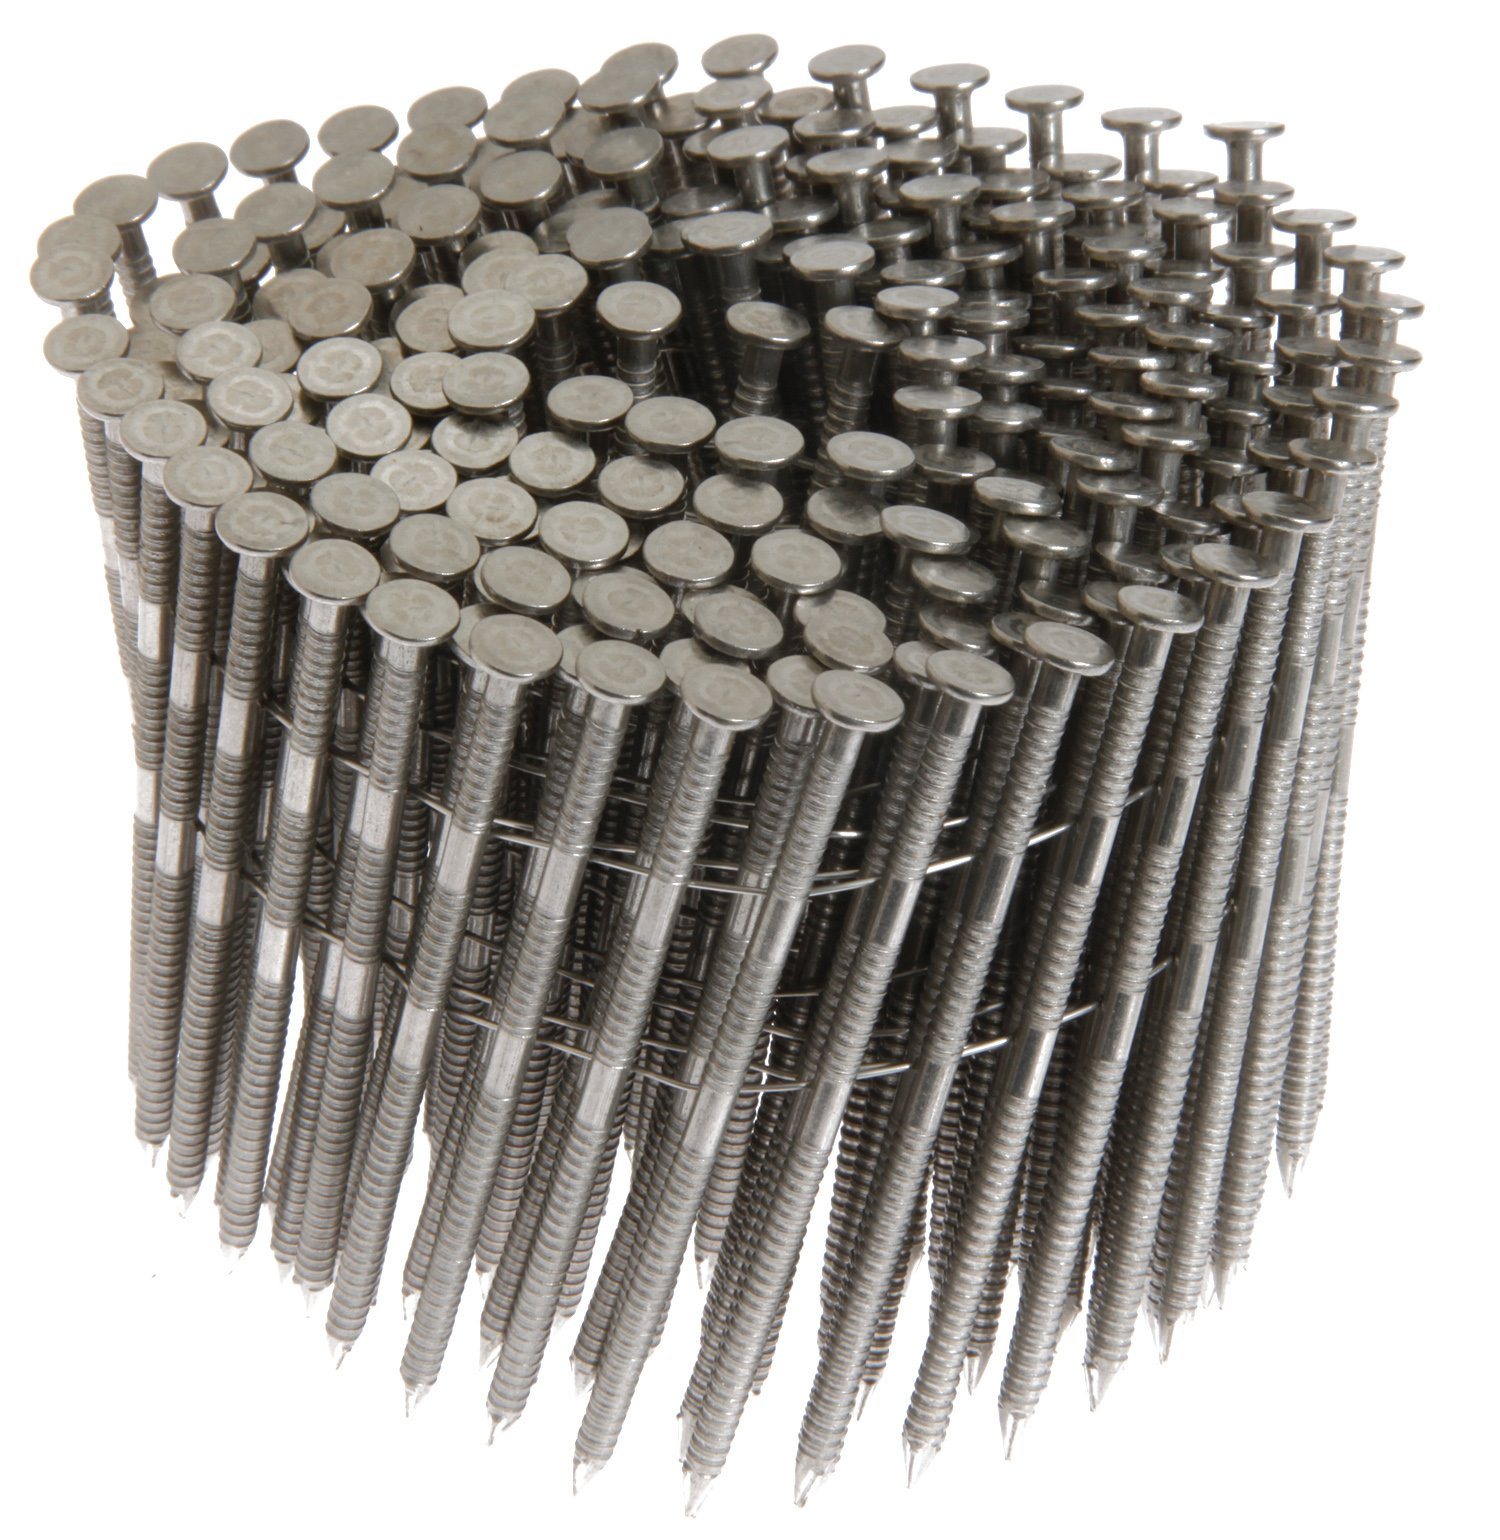 Grip Rite Prime Guard MAXC62875 15-Degree Wire Coil 1-3/4-Inch by .09-Inch Ring Shank, Stainless Steel Siding Nails, 1200 Per Box by Grip Rite Prime Guard